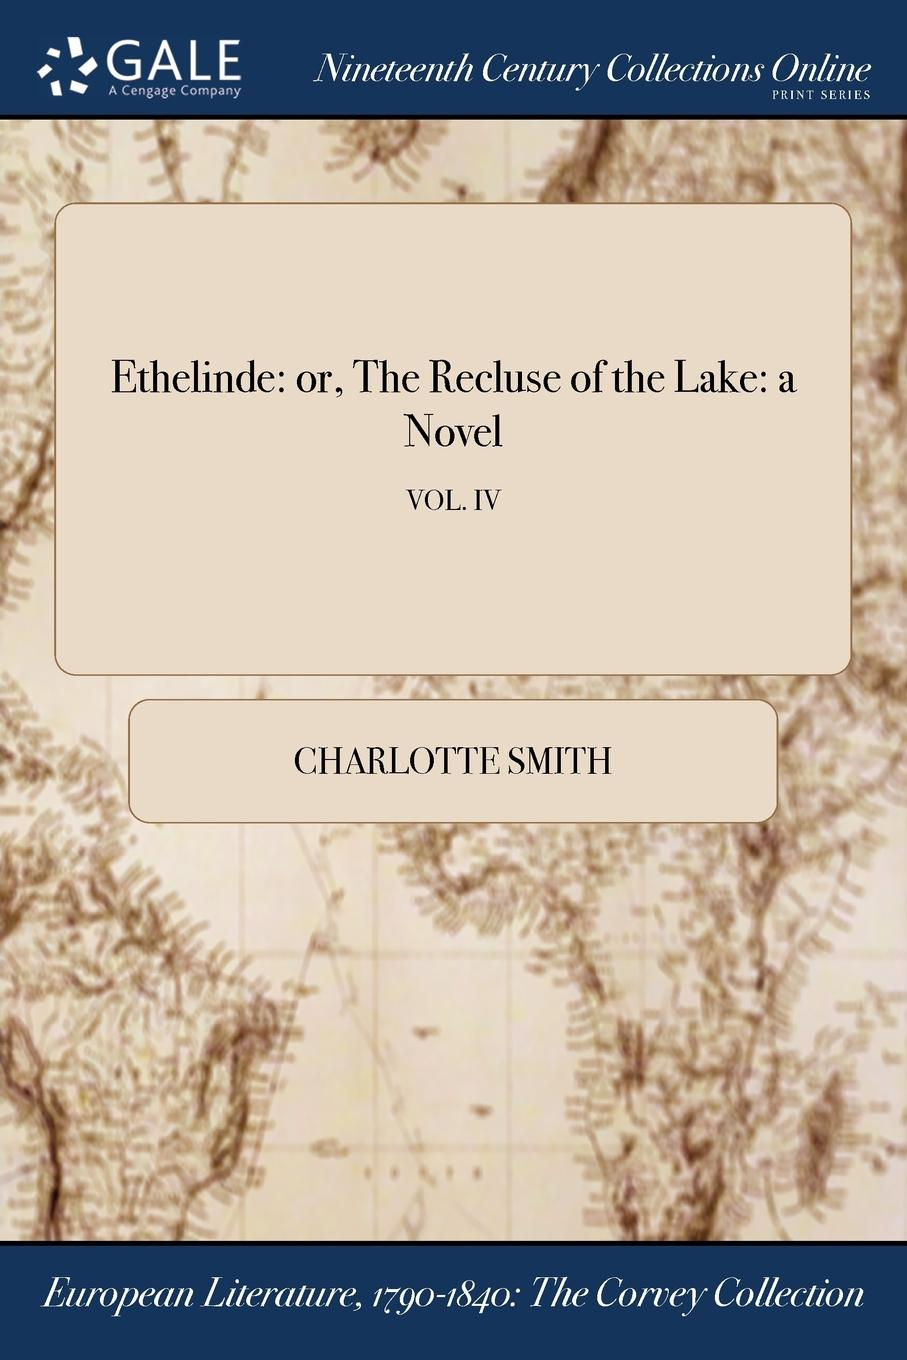 Charlotte Smith Ethelinde. or, The Recluse of the Lake: a Novel; VOL. IV